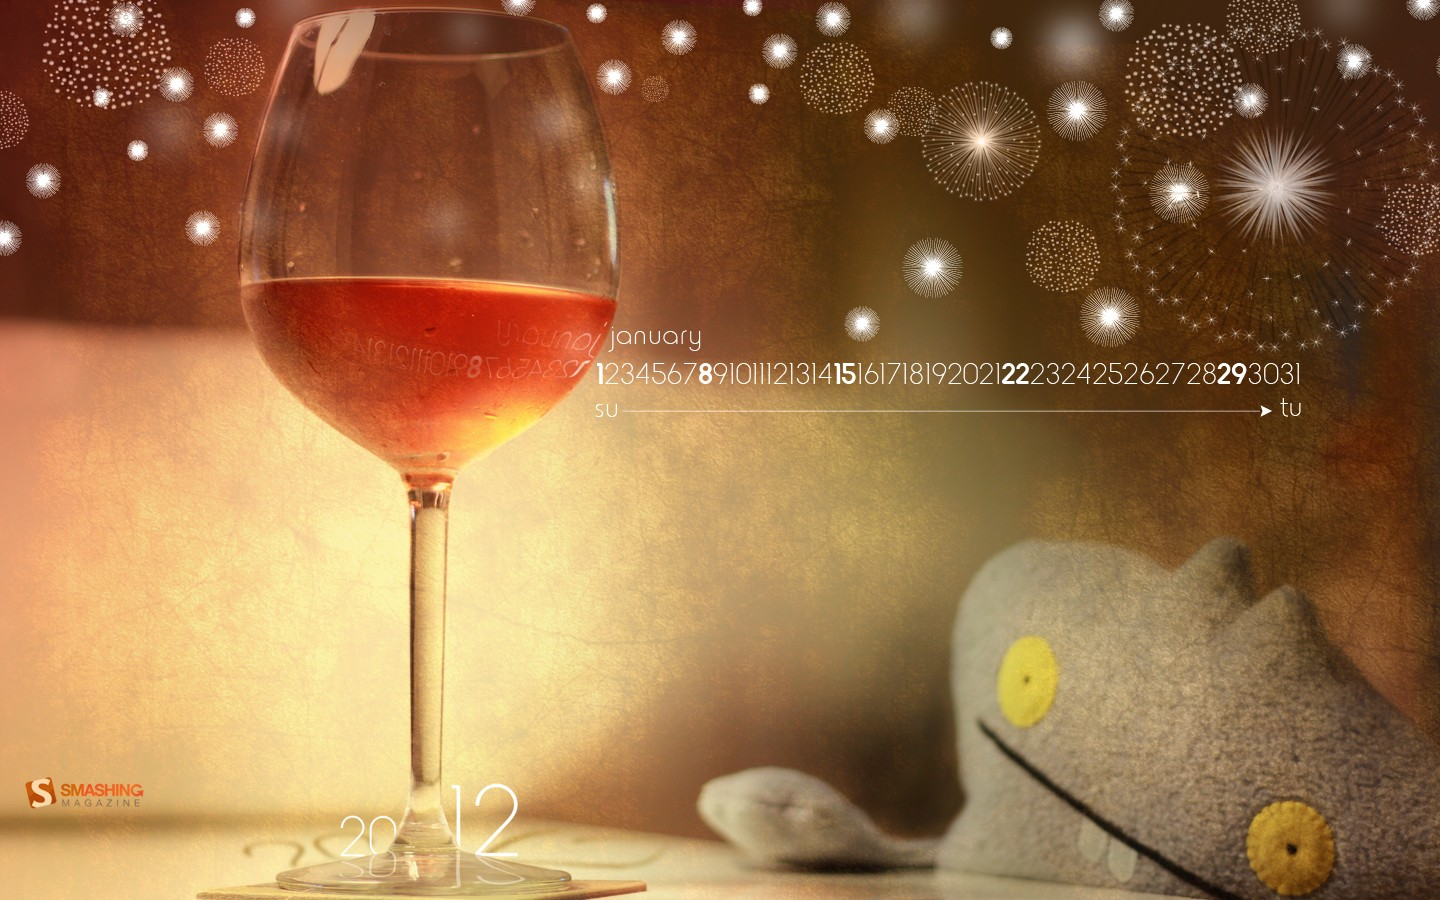 In January Calendar Wallpaper 31353